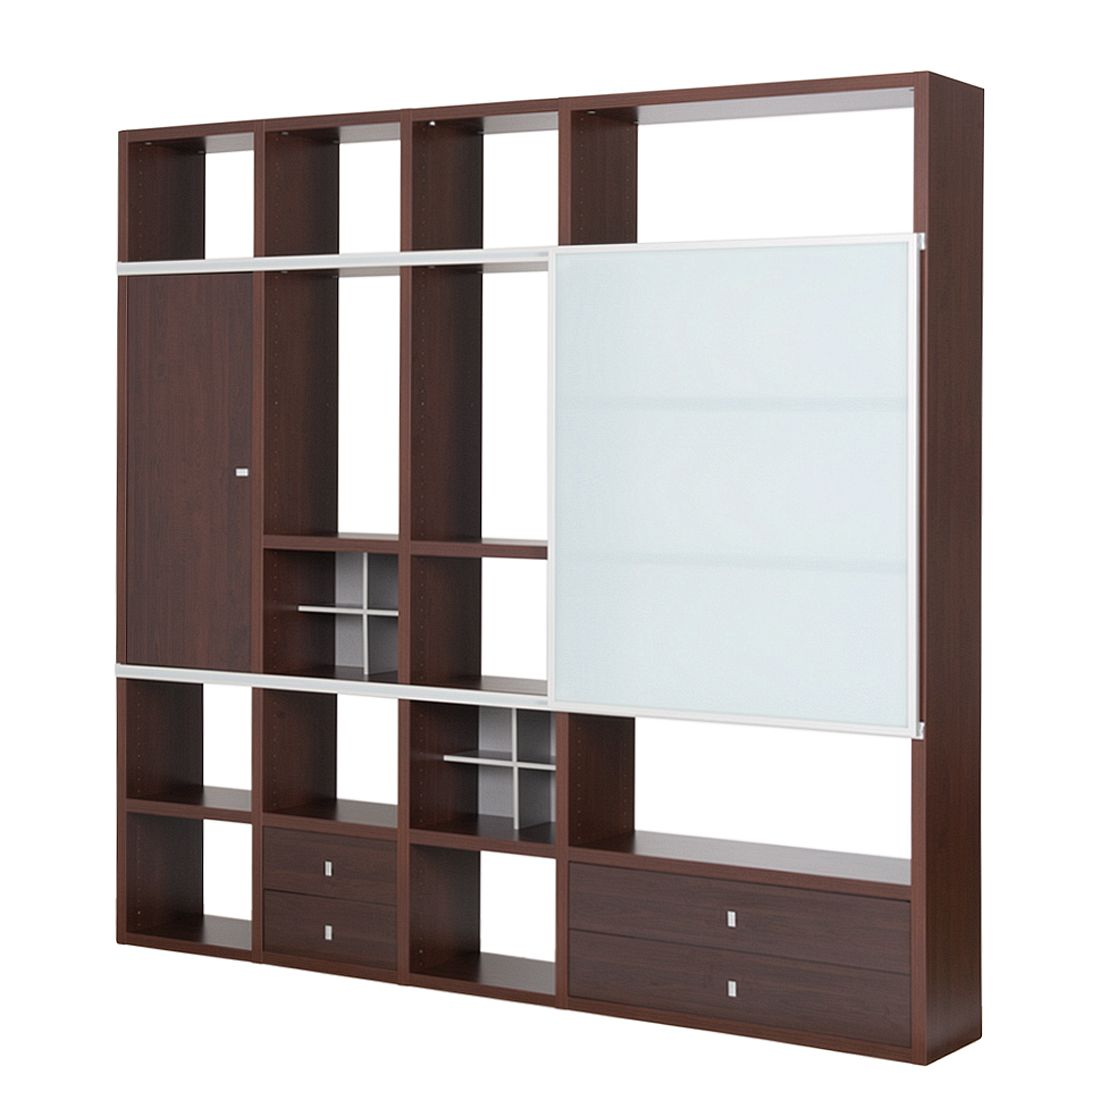 wohnwand empire wenge schiebet r glas. Black Bedroom Furniture Sets. Home Design Ideas